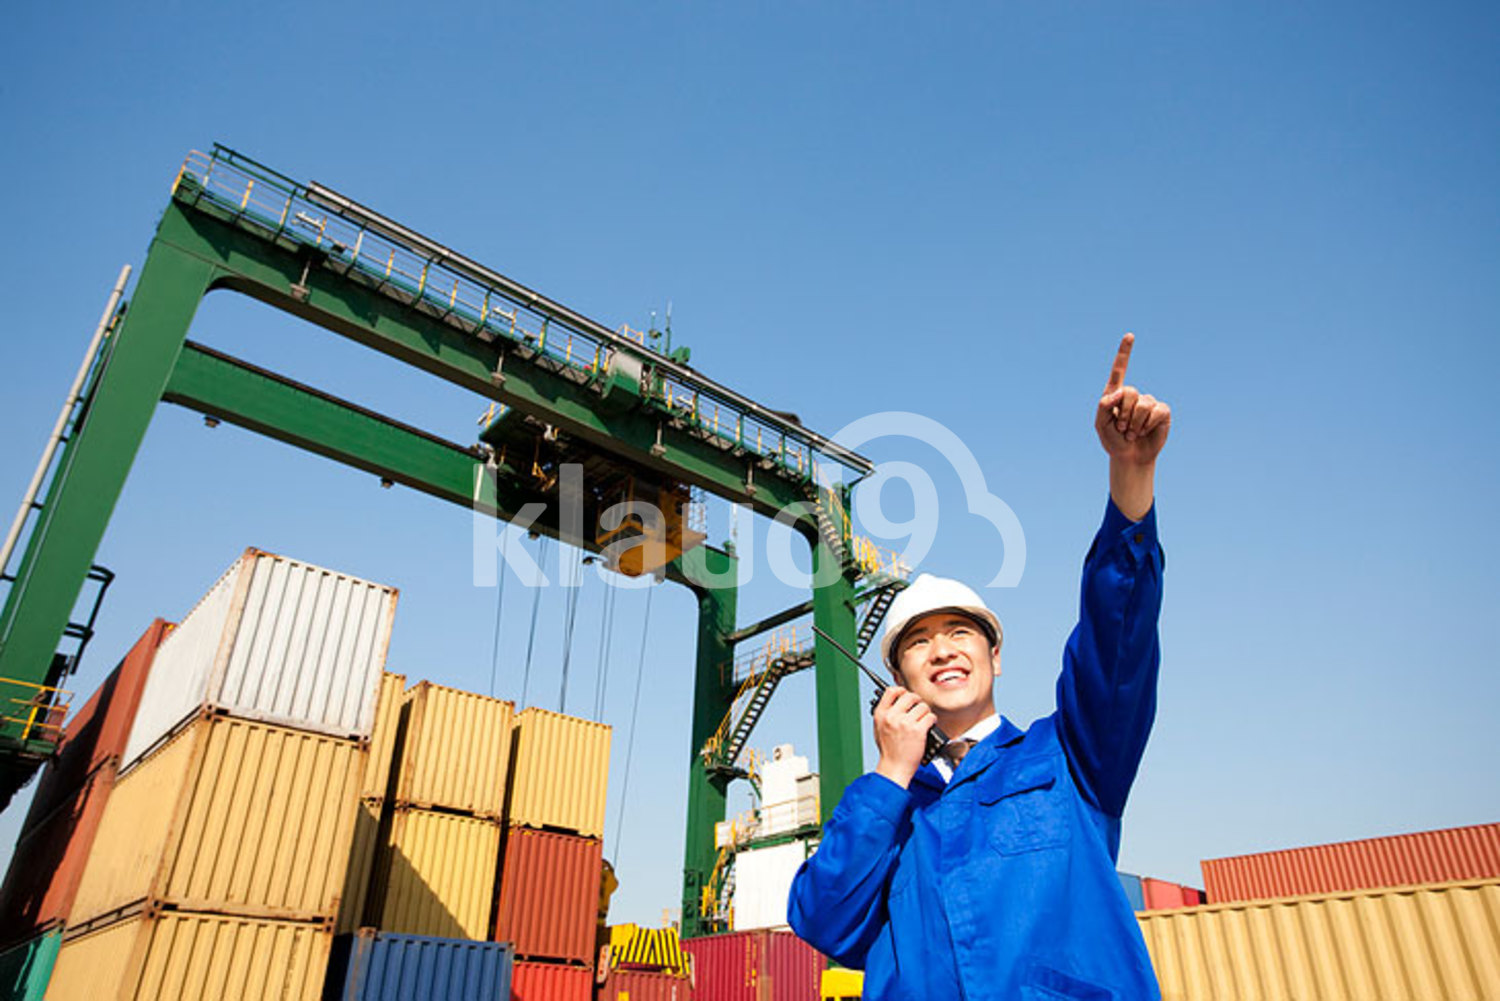 Chinese shipping industry manager with a walkie-talkie pointing